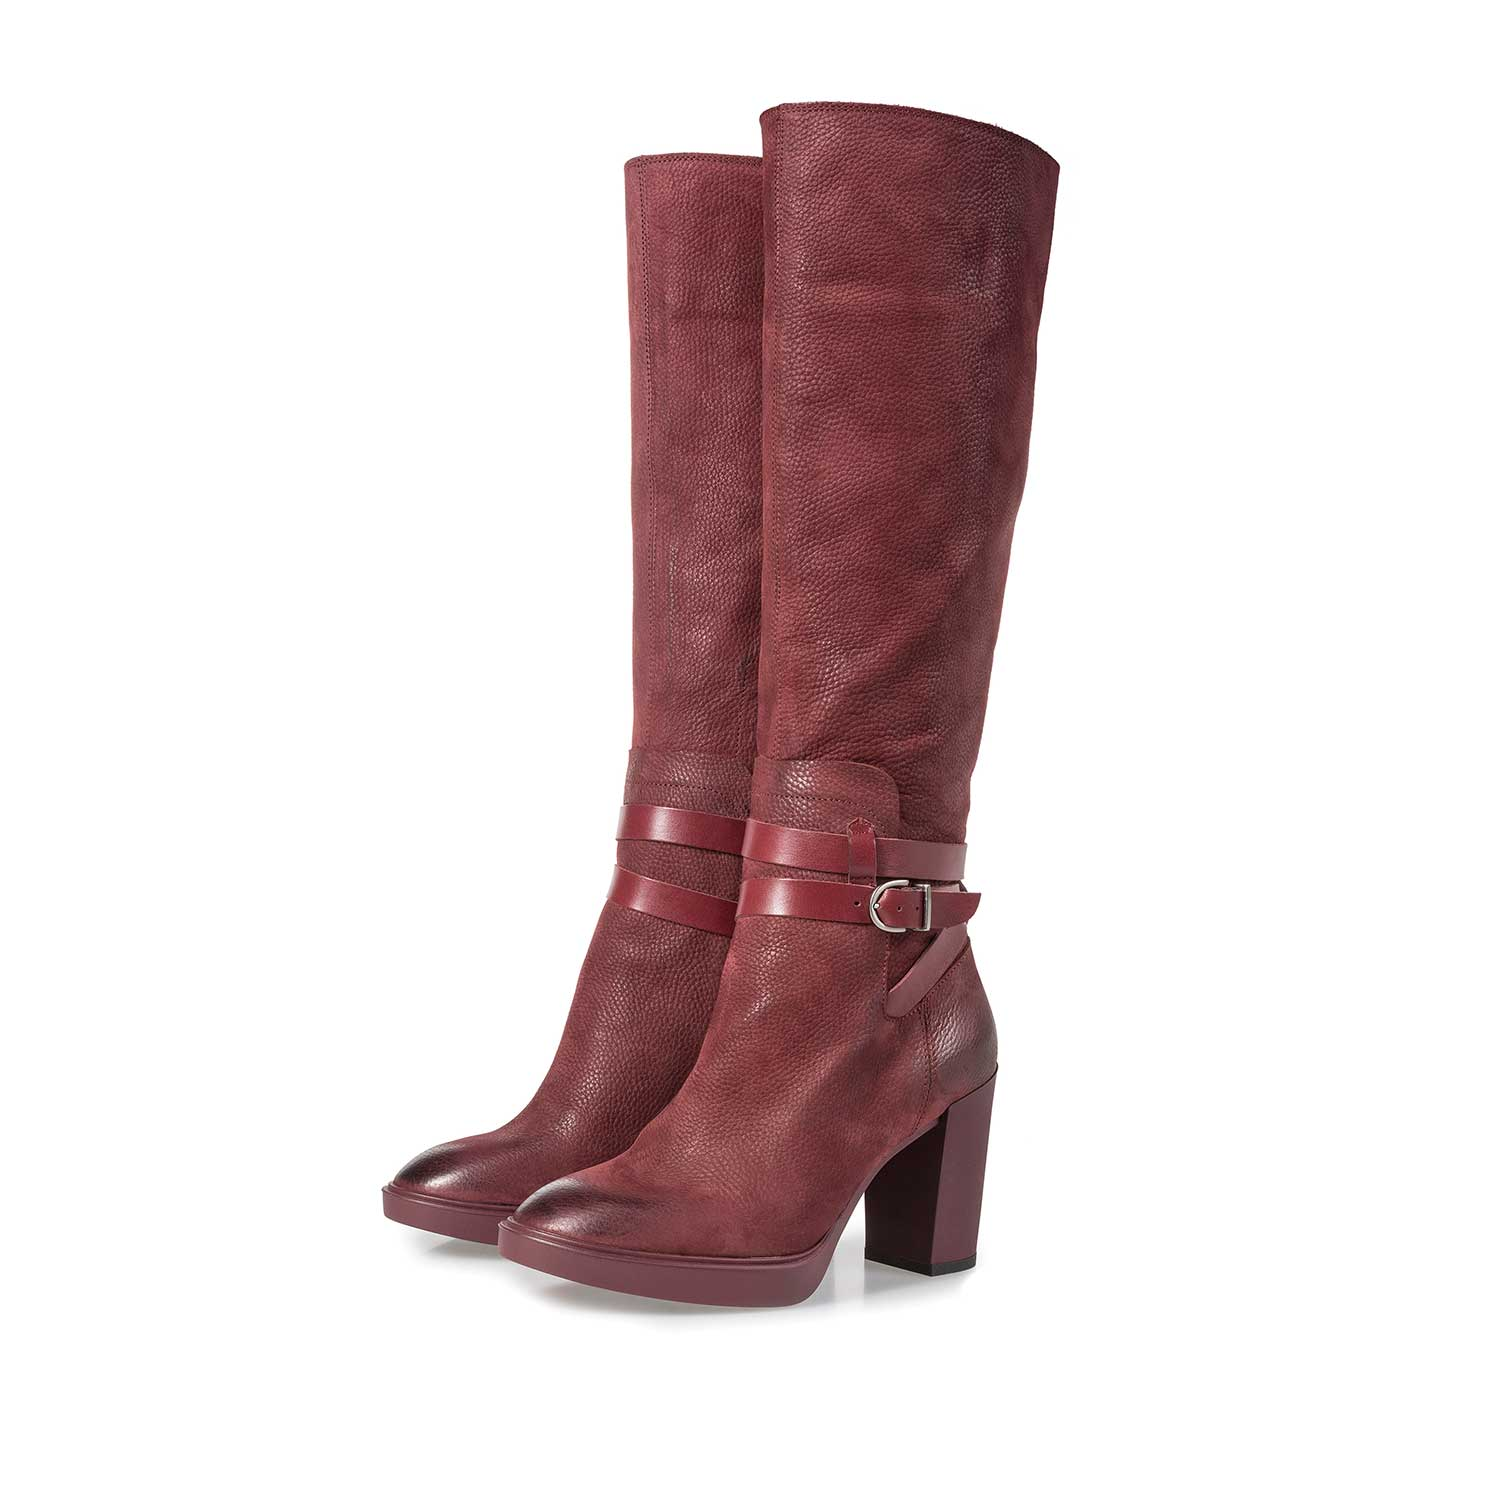 85713/00 - Burgundy red nubuck leather high boots with a print